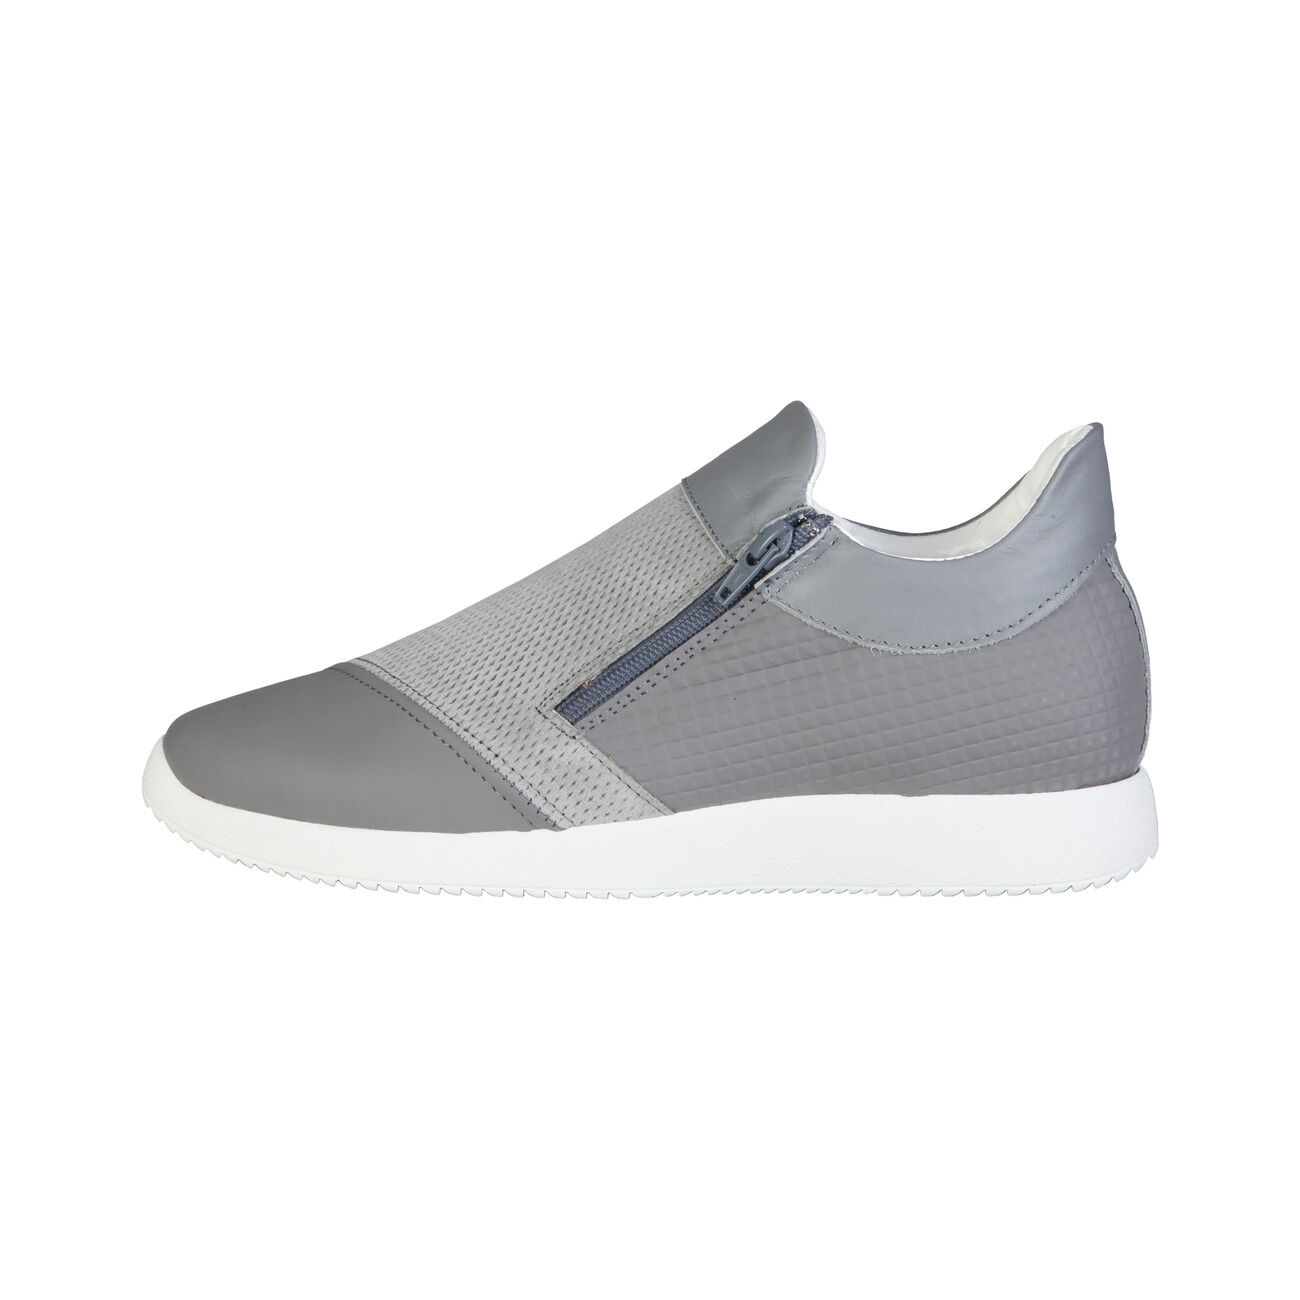 Sneakers GIULIO Made in Italia - GIULIO Sneakers Man Grey 92f6ac